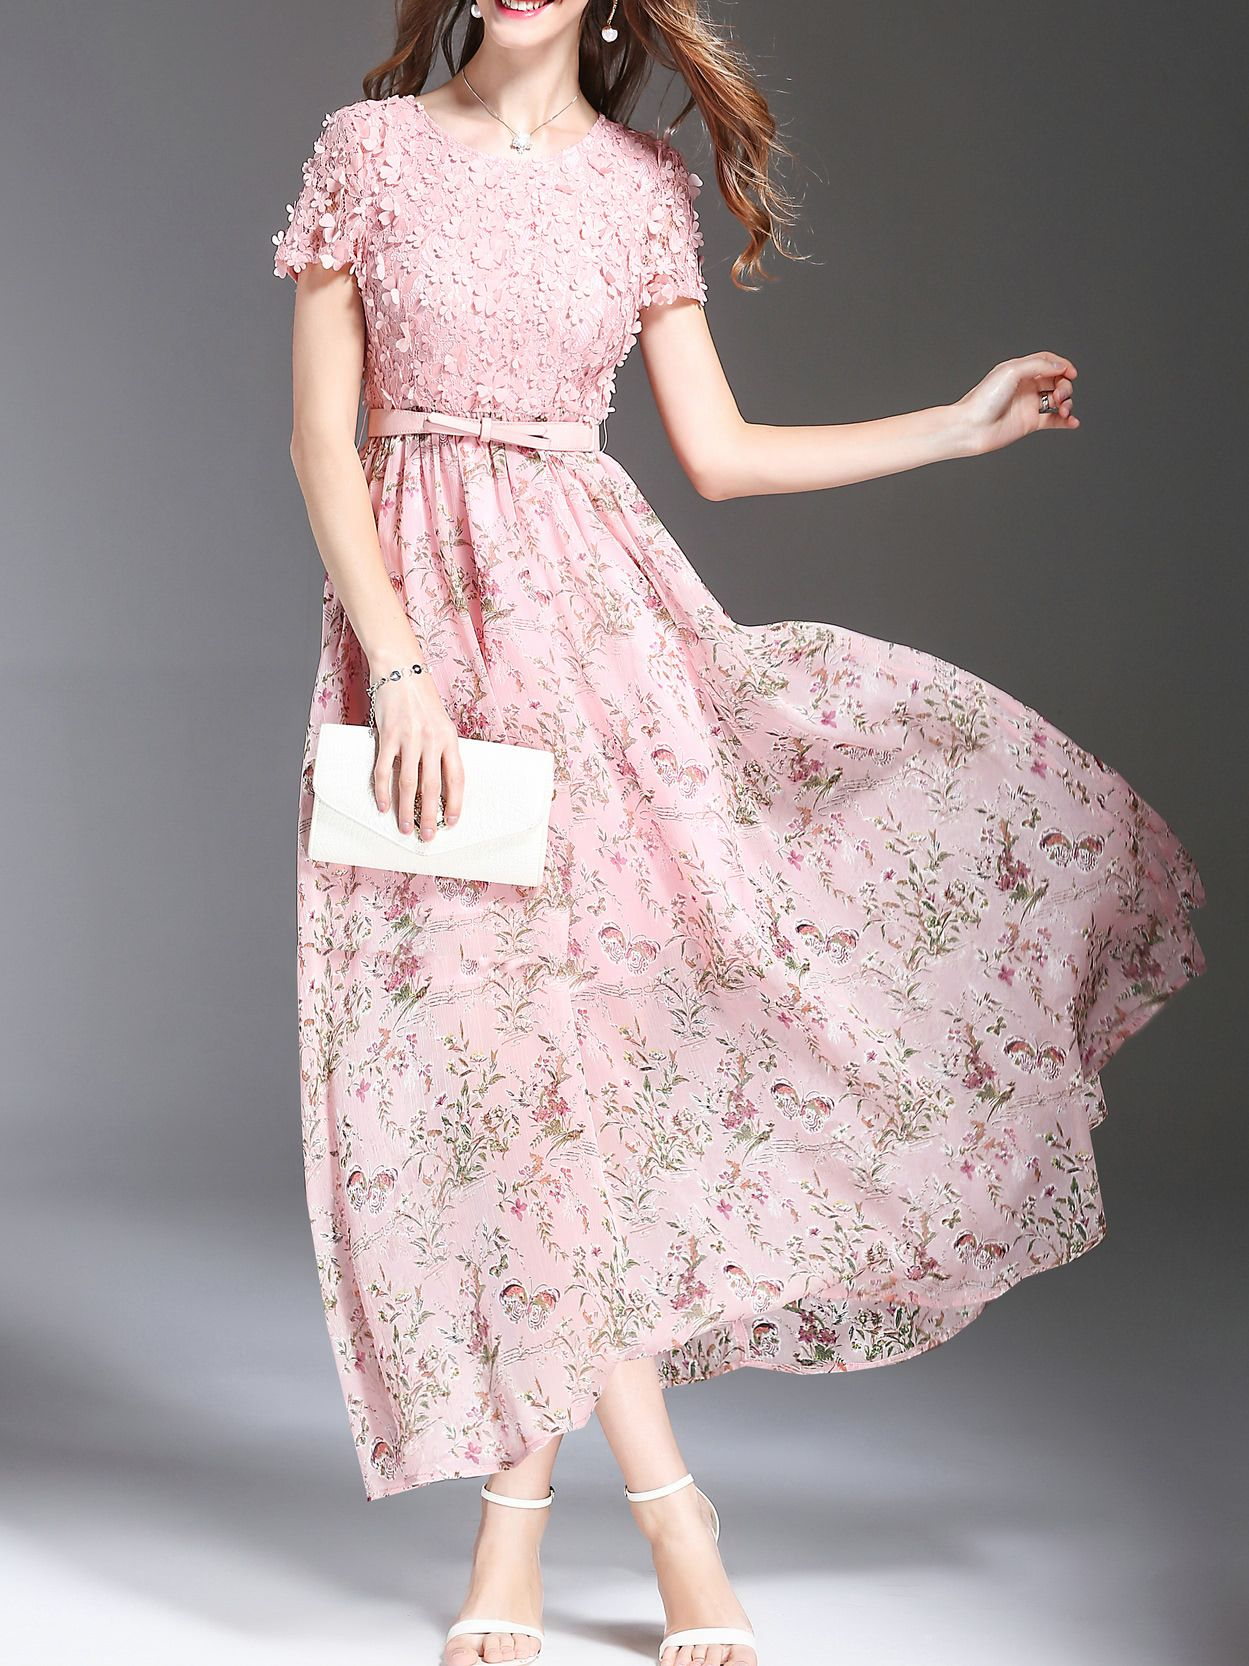 de4ae39bb0 Flowers Applique Beading Floral Dress -SheIn(Sheinside) | Shein ...